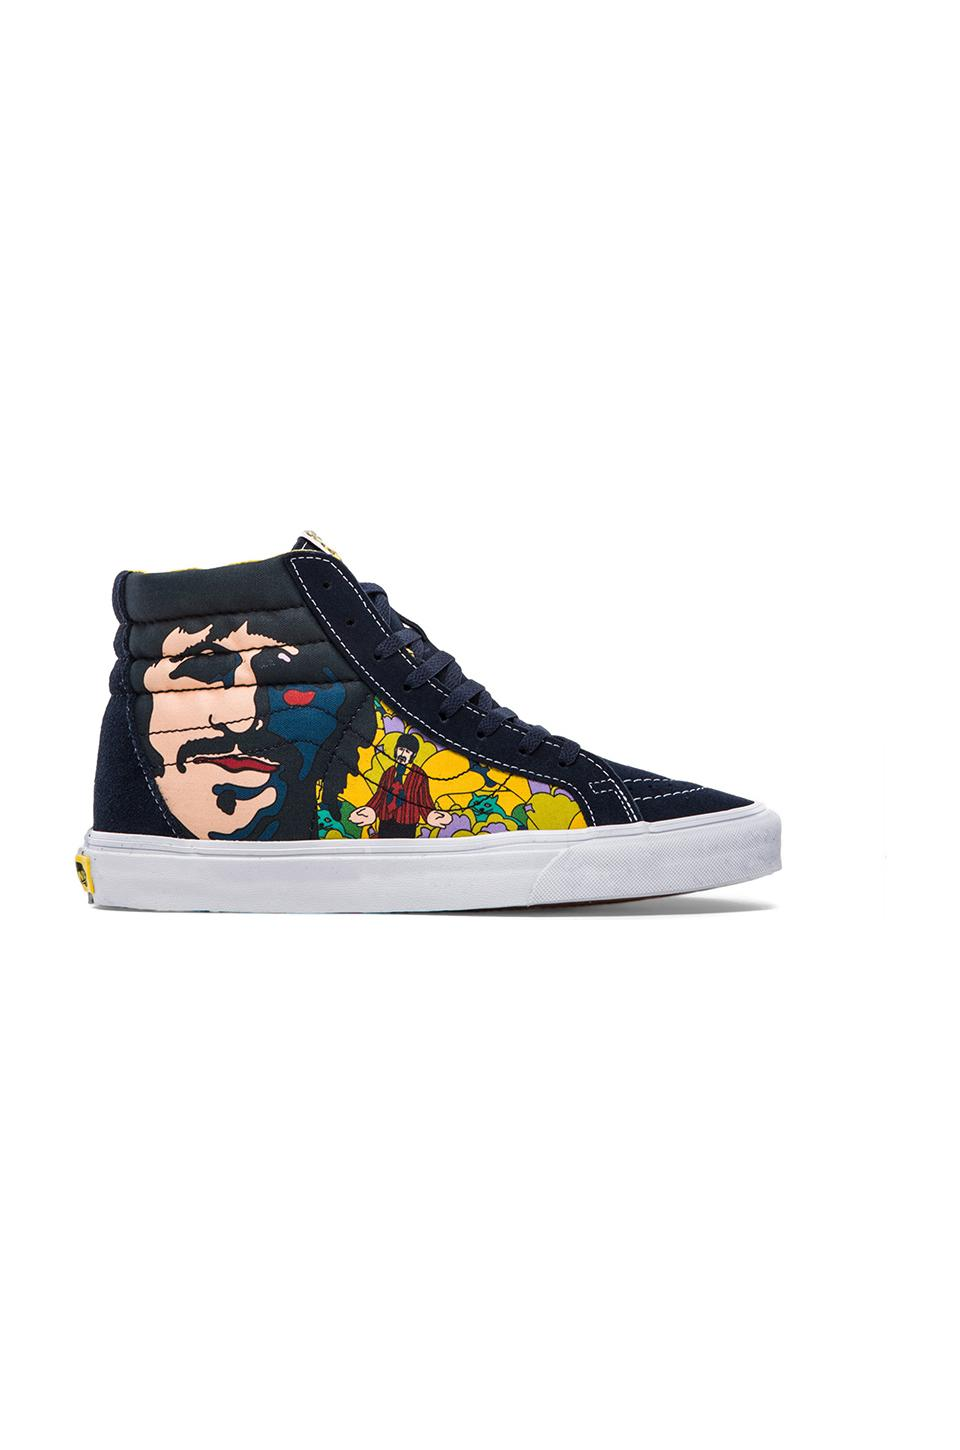 Vans Sk8 Hi Reissue The Beatles in Faces Dress Blues